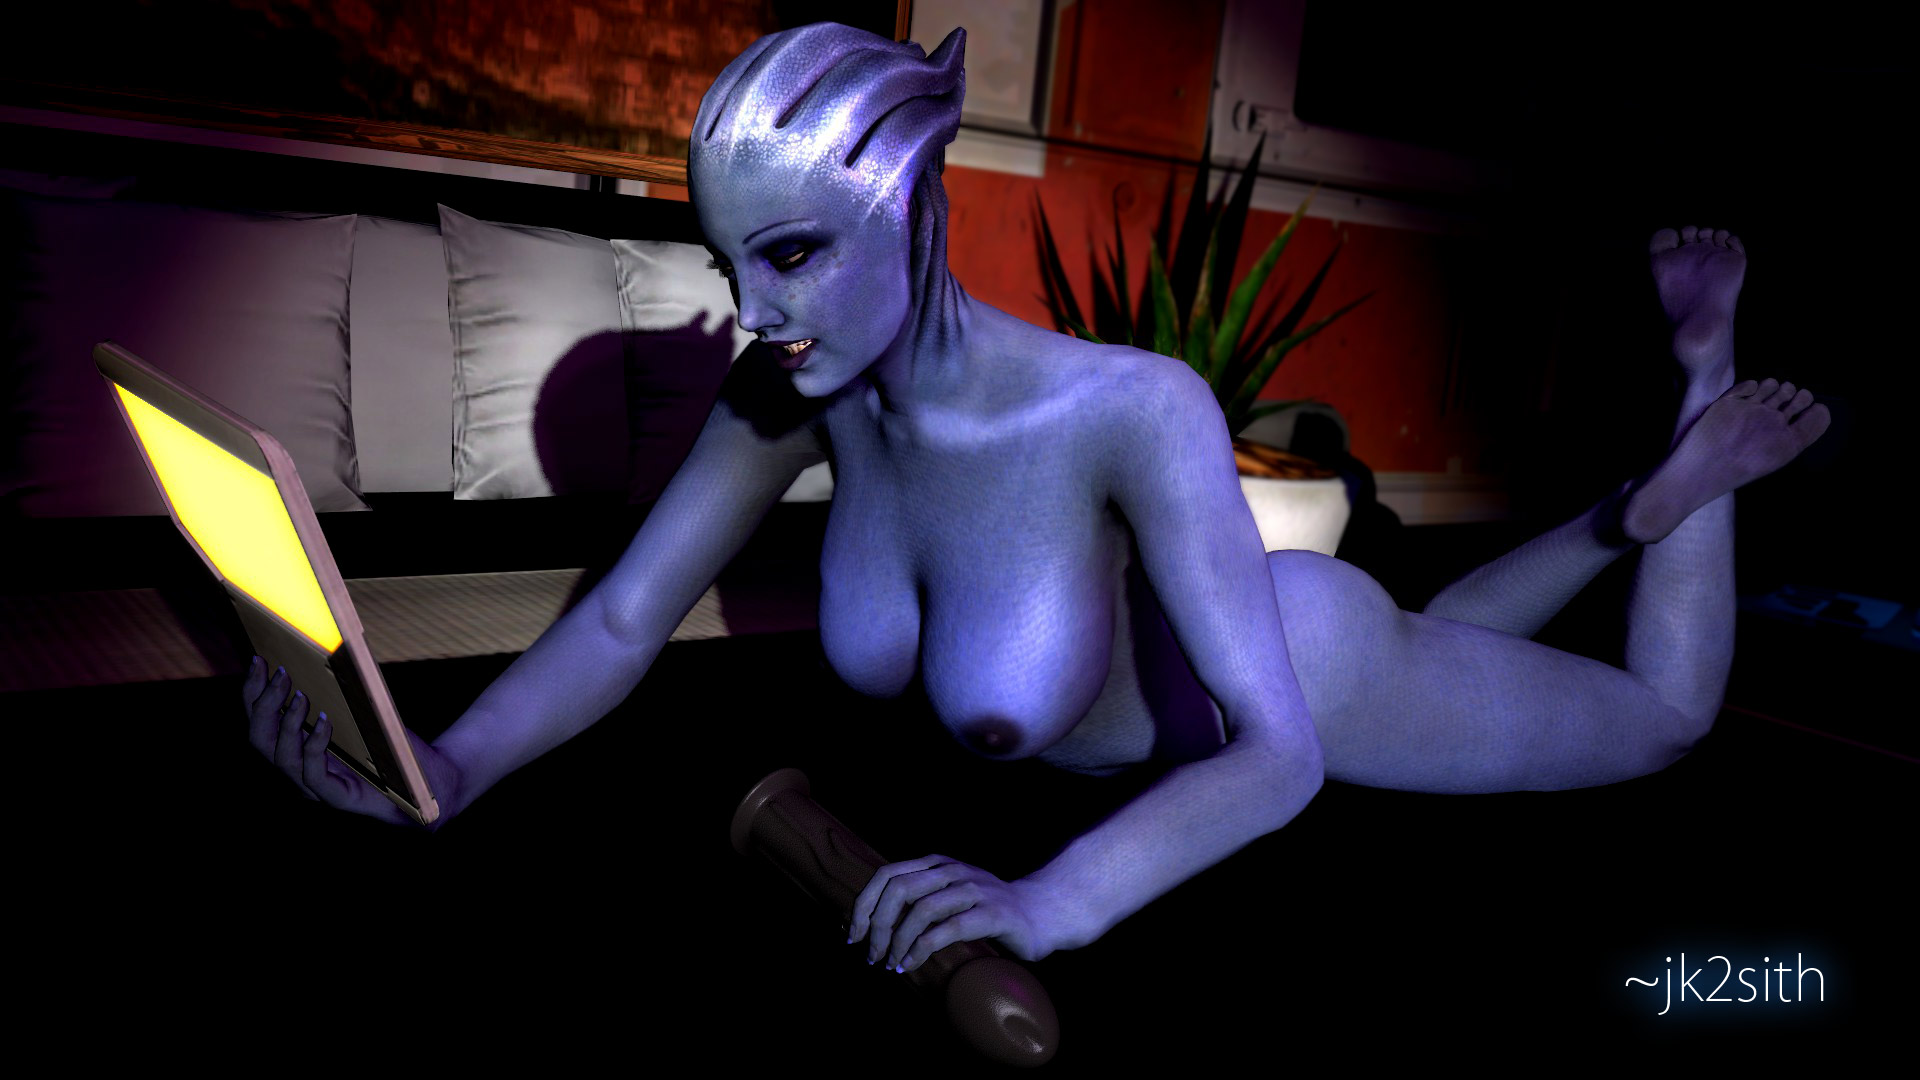 Mass effect 3 pregnant porn nudes thumbs